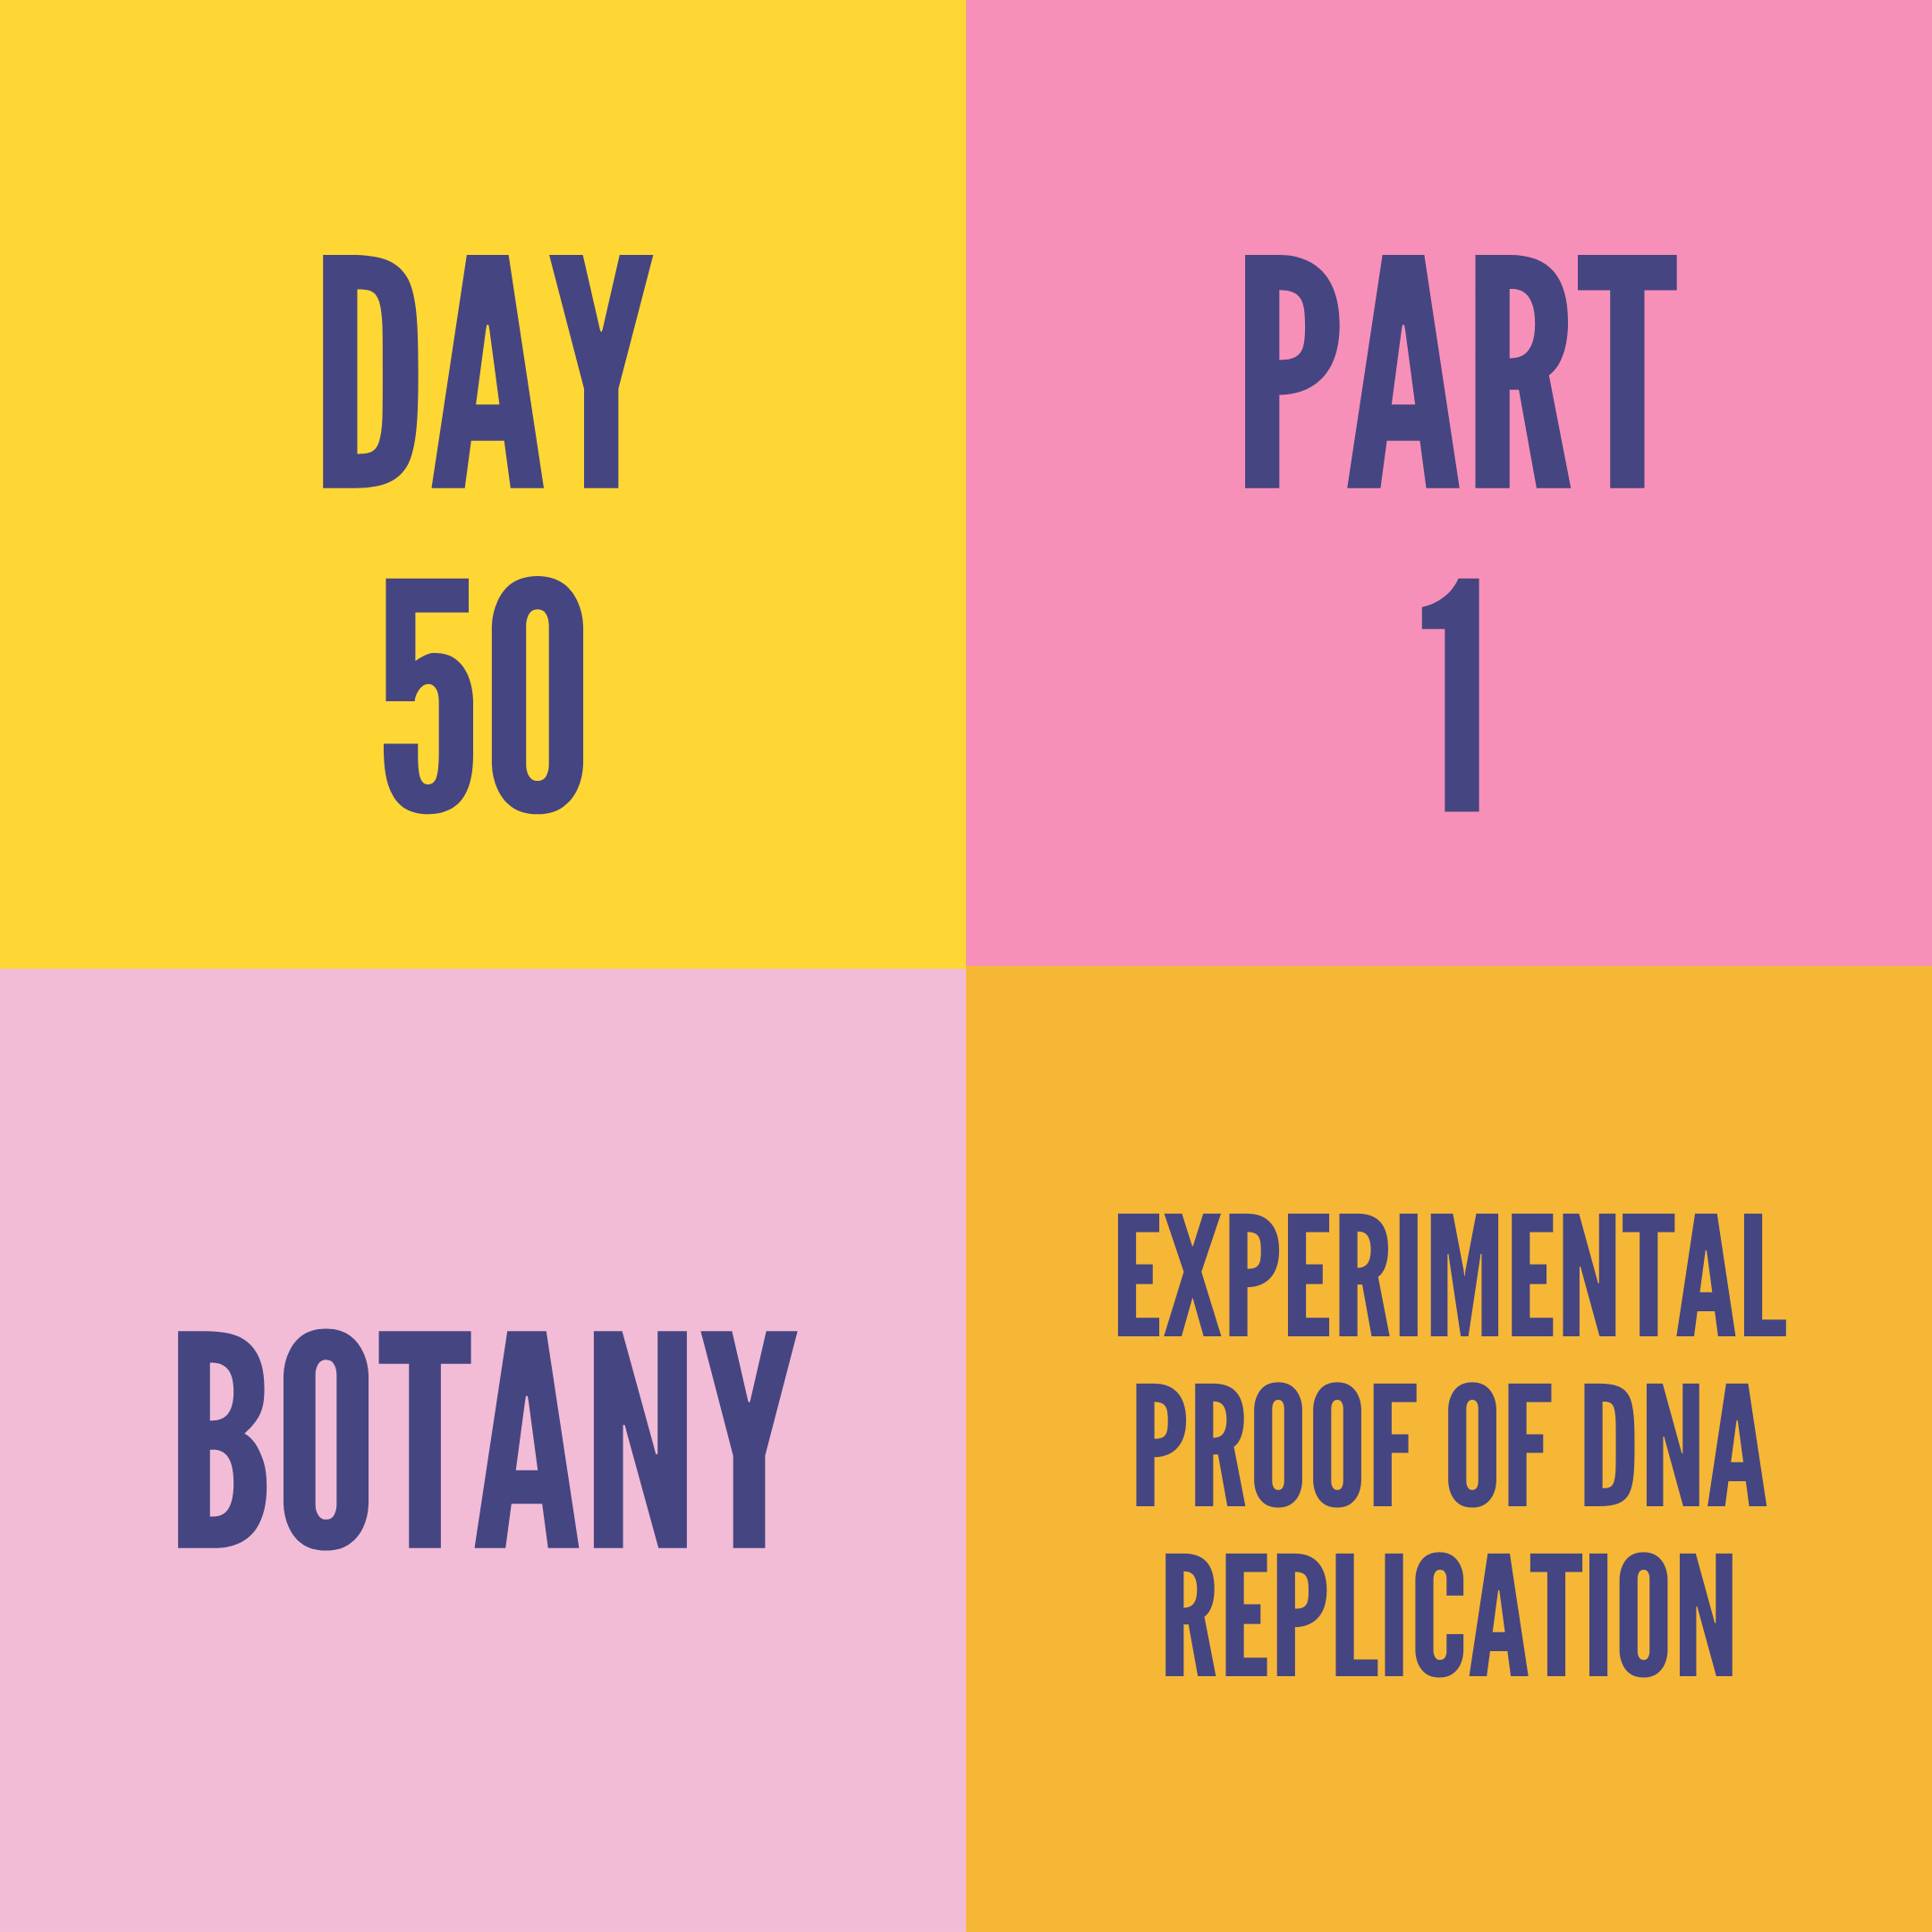 DAY-50 PART-1 EXPERIMENTAL PROOF OF DNA REPLICATION